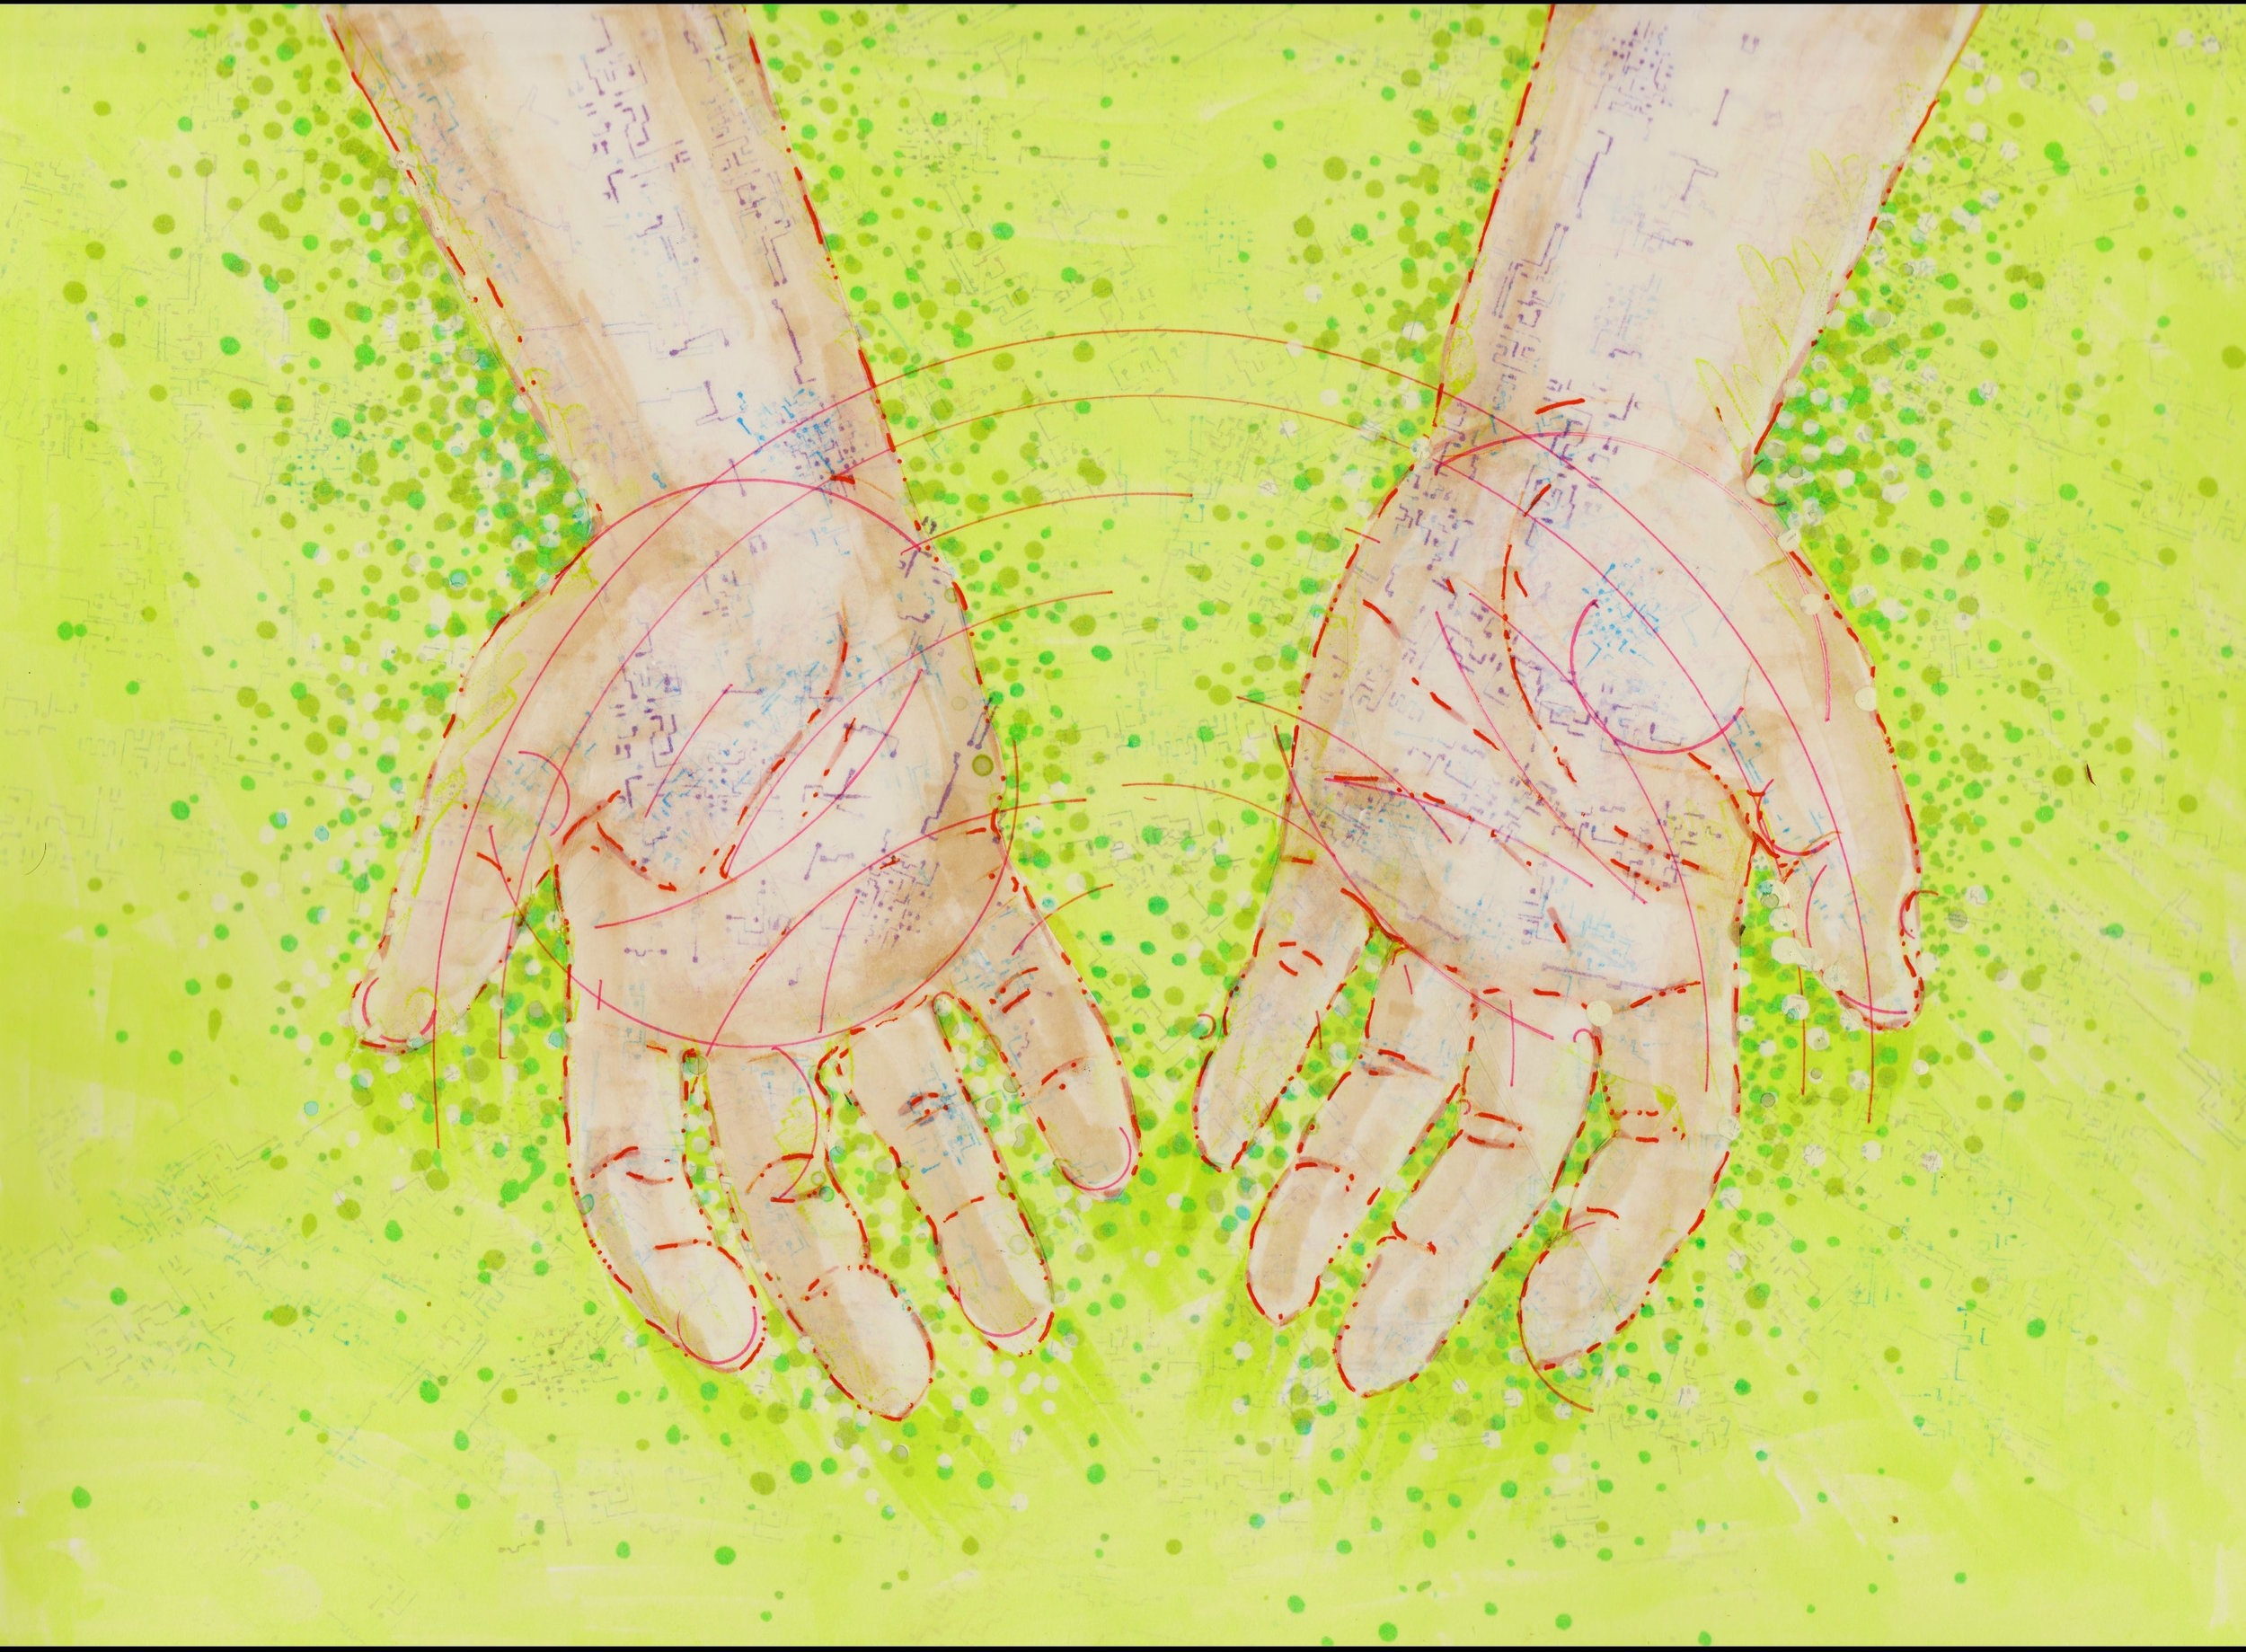 Illustration by Tiffany Gomez. Tiffani Gomez is a native Washington, DC artist.You can find her on  Instagram and  Tumblr .  [Image description:illustration of open, cupped hands,outlined in red, with hints of circuitboard-like veins peaking through. The hands are open over a green field with green dots swirling around them.]